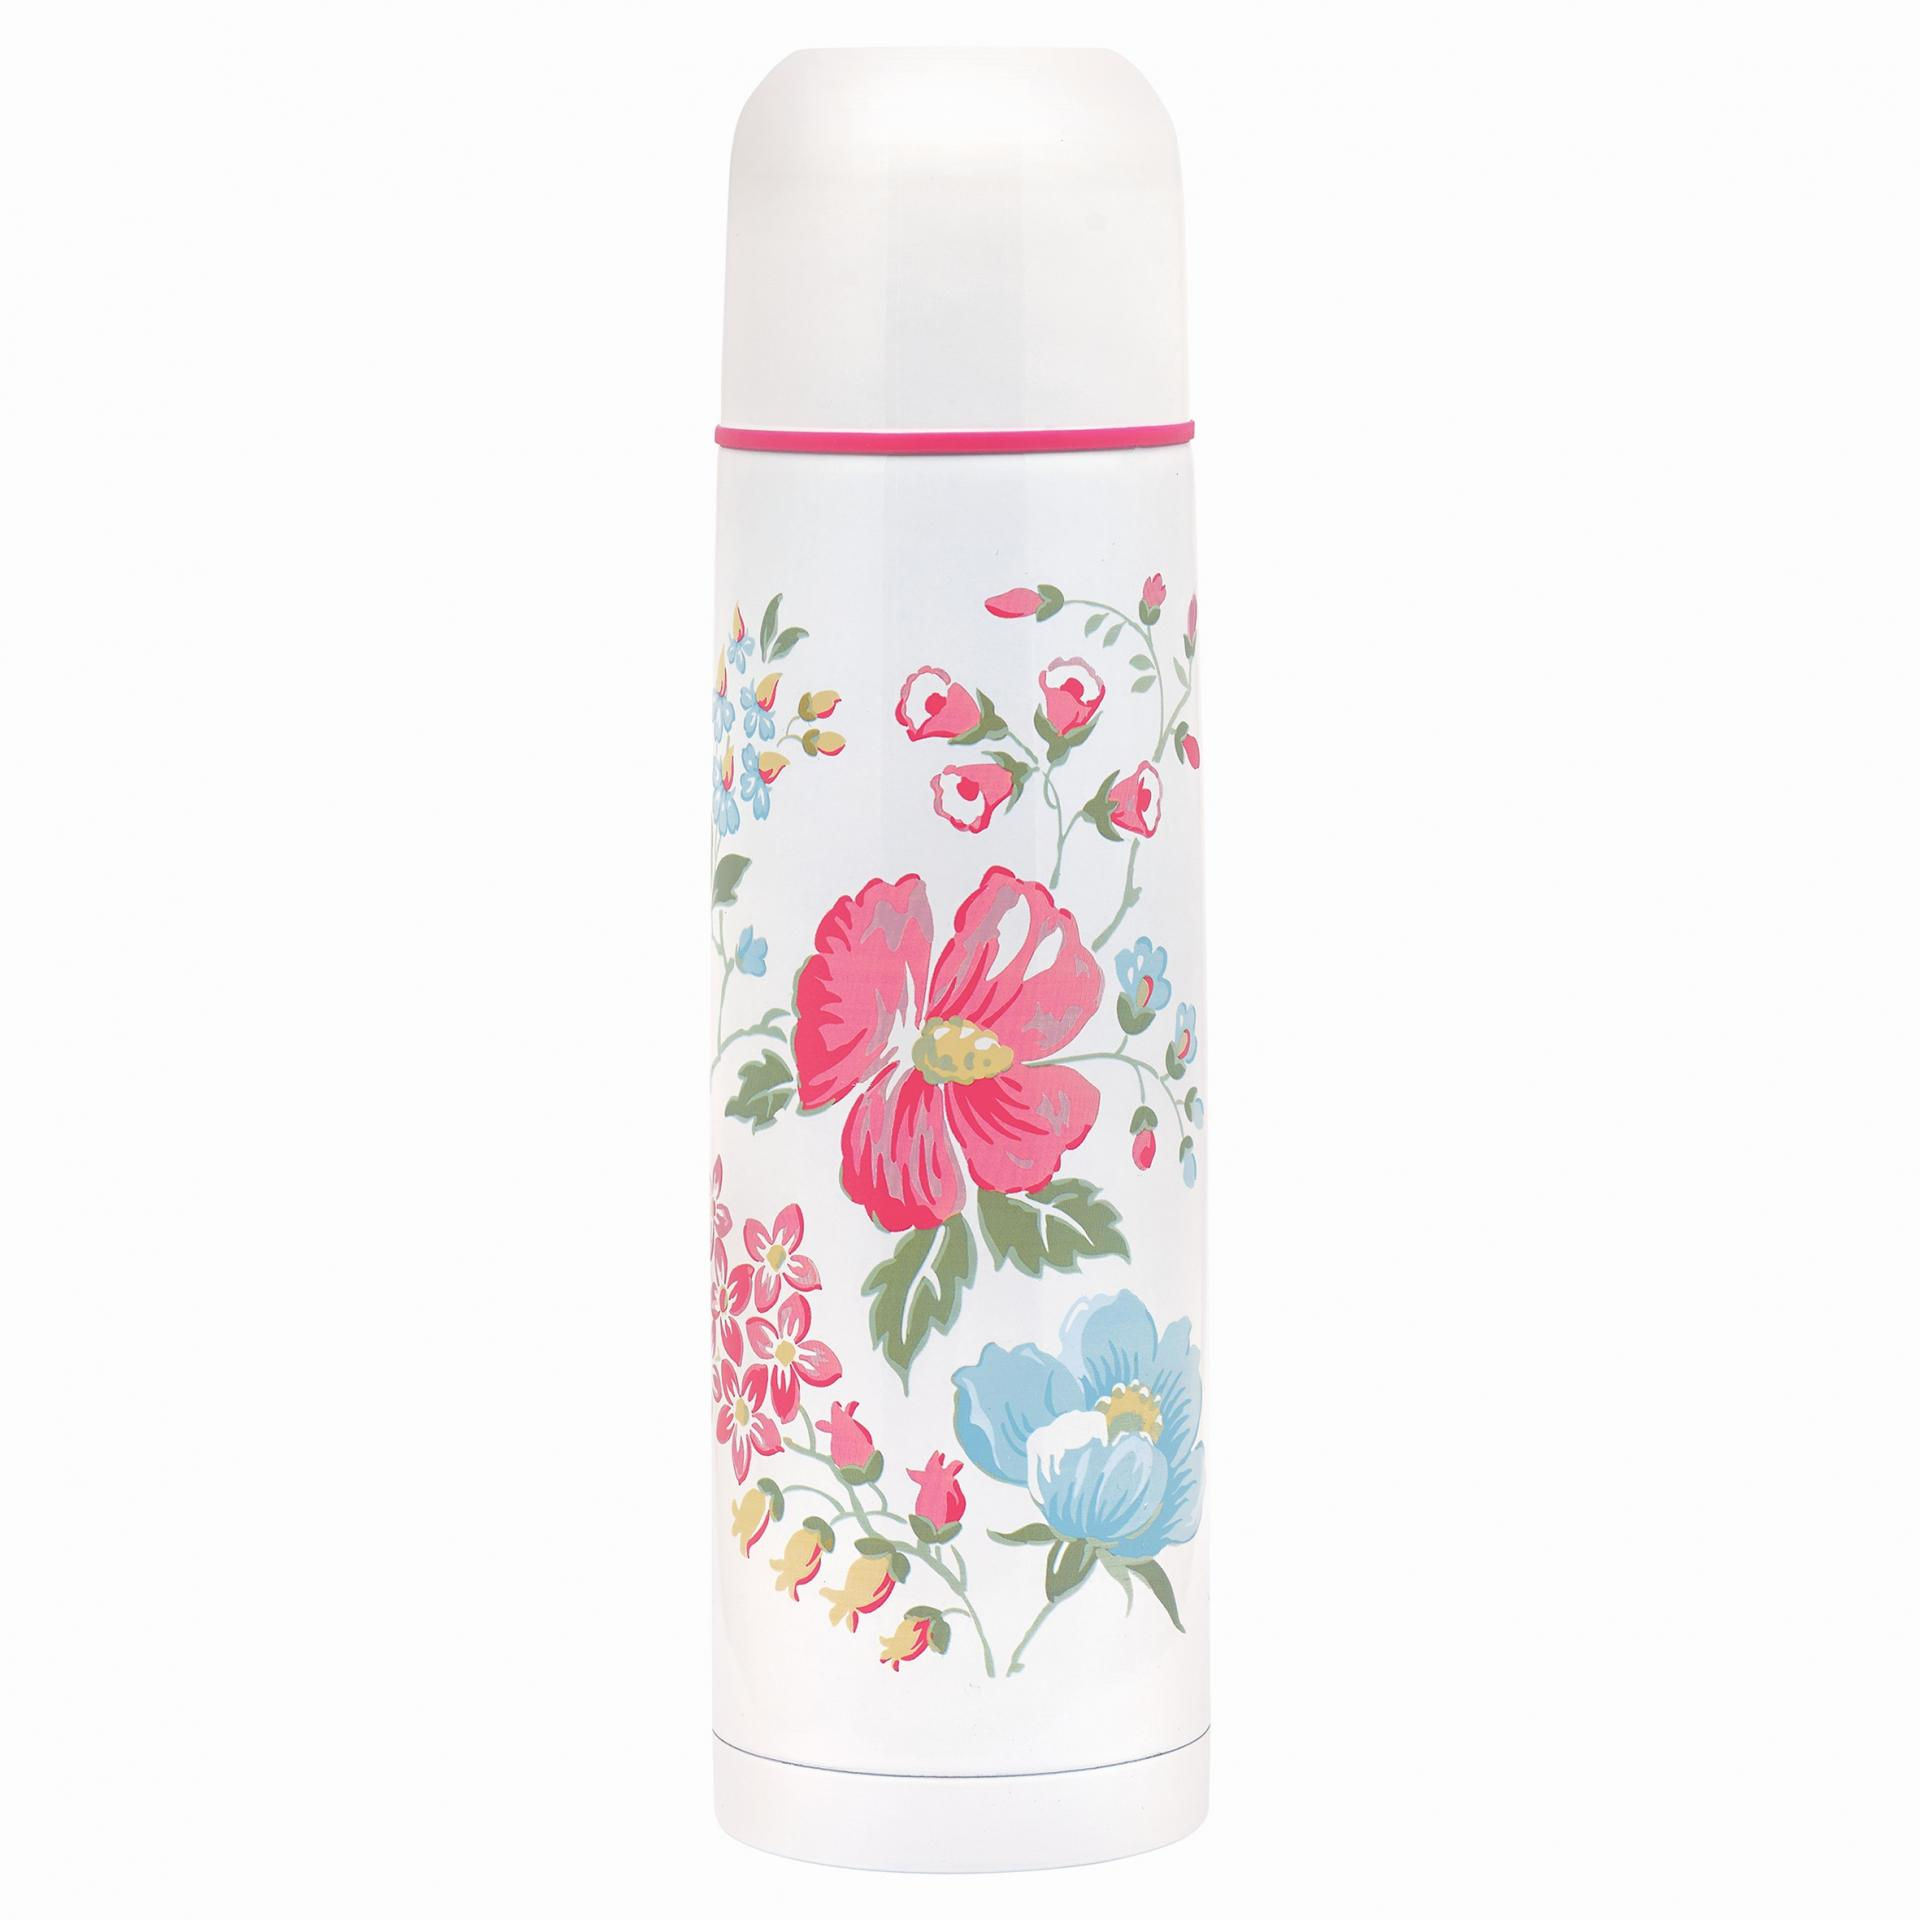 Green Gate Termoska Donna white 800 ml